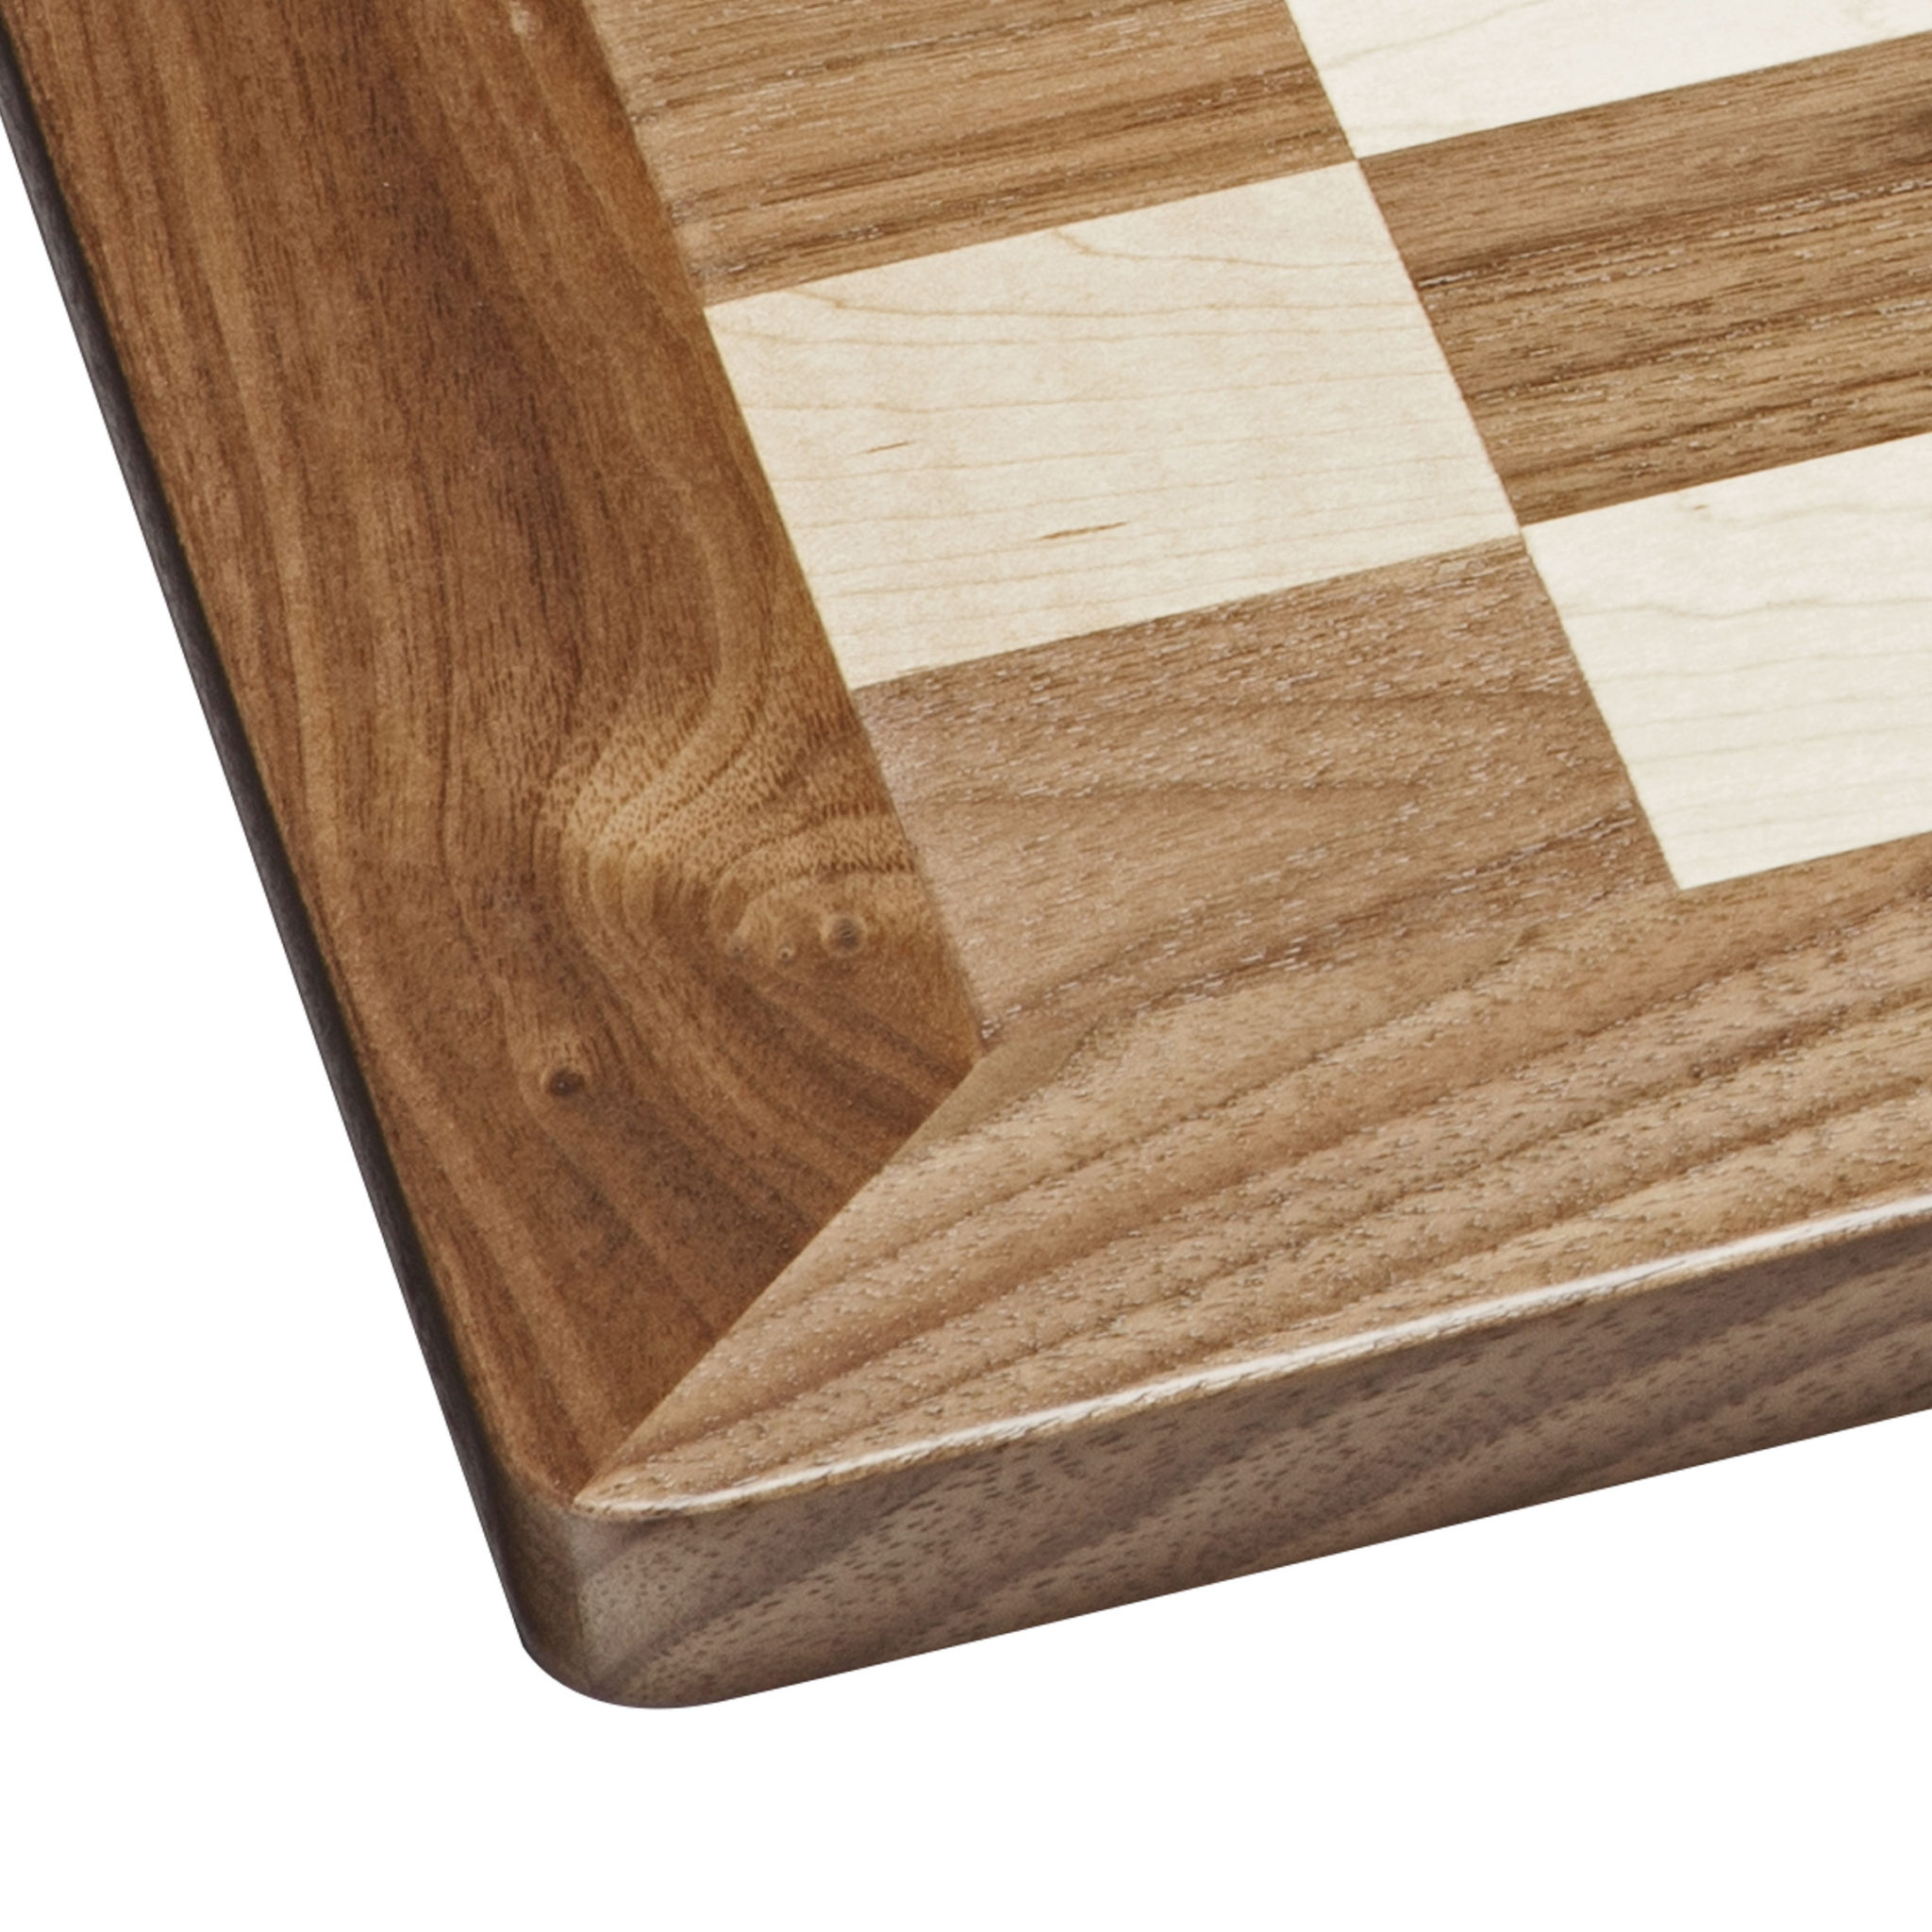 Grand English Chess Set Weighted Pieces With Solid Maple